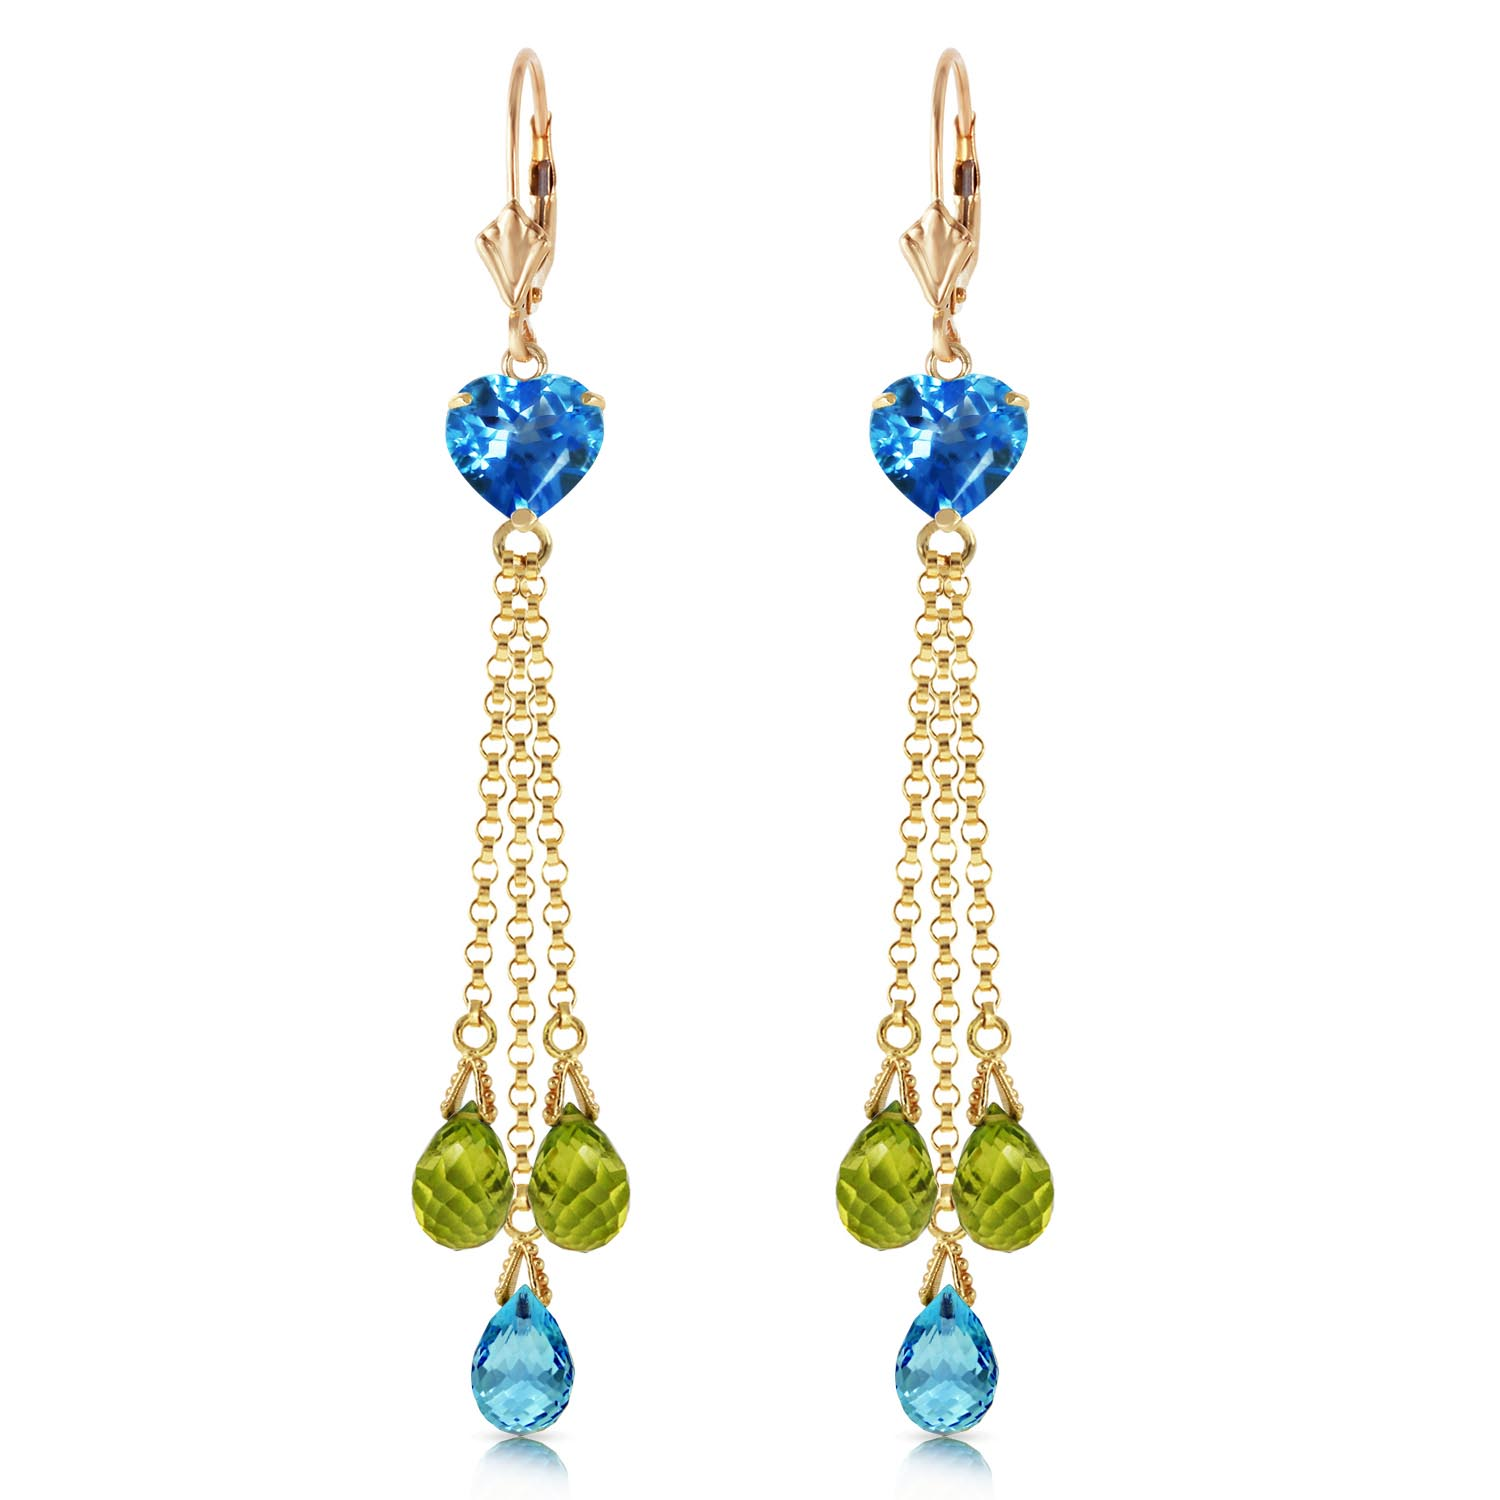 Blue Topaz and Peridot Vestige Drop Earrings 9.5ctw in 14K Gold